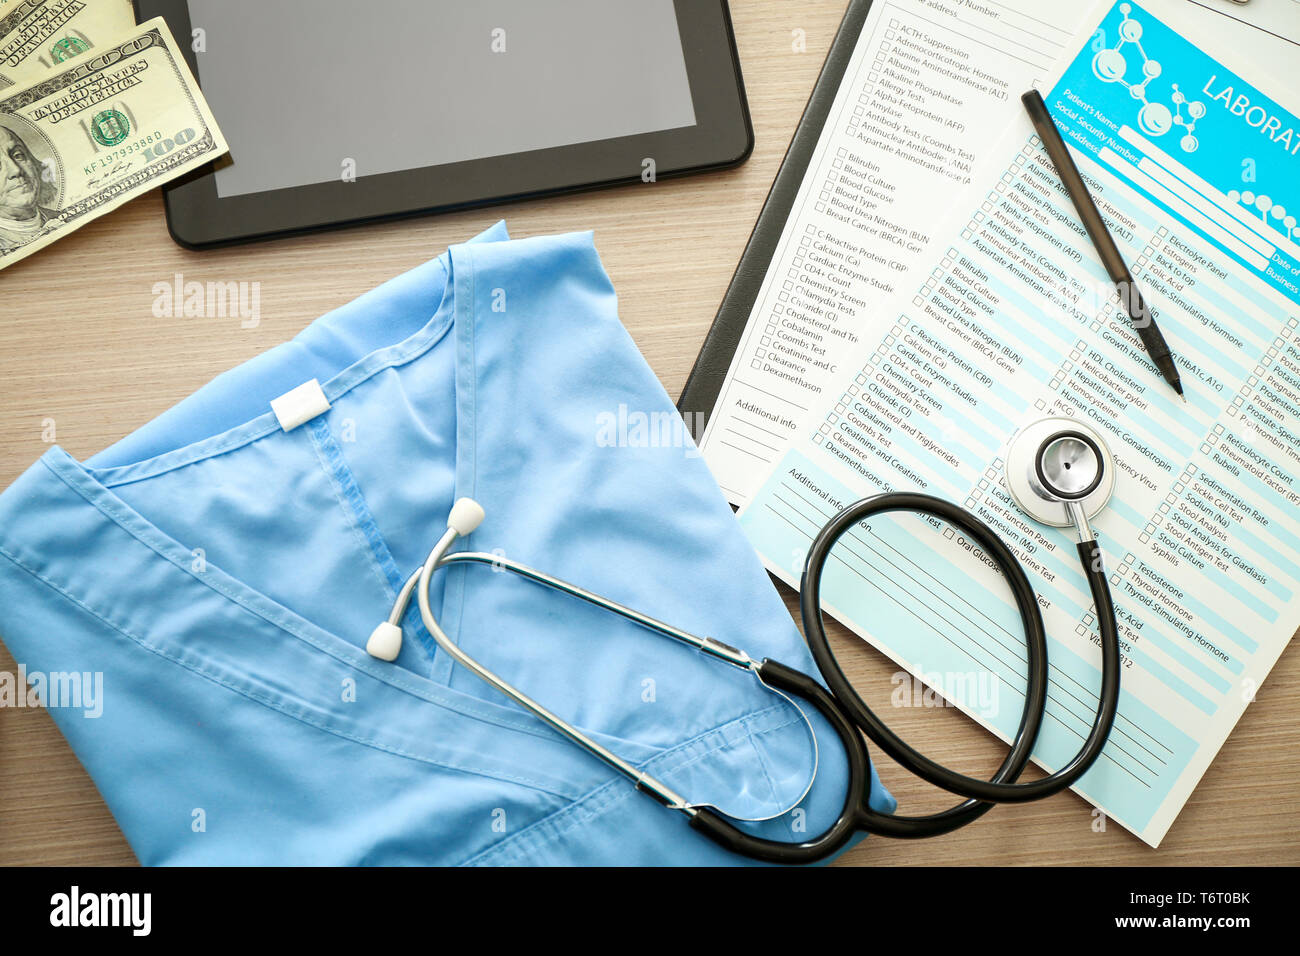 Stethoscope with blue doctor's uniform and laboratory tests